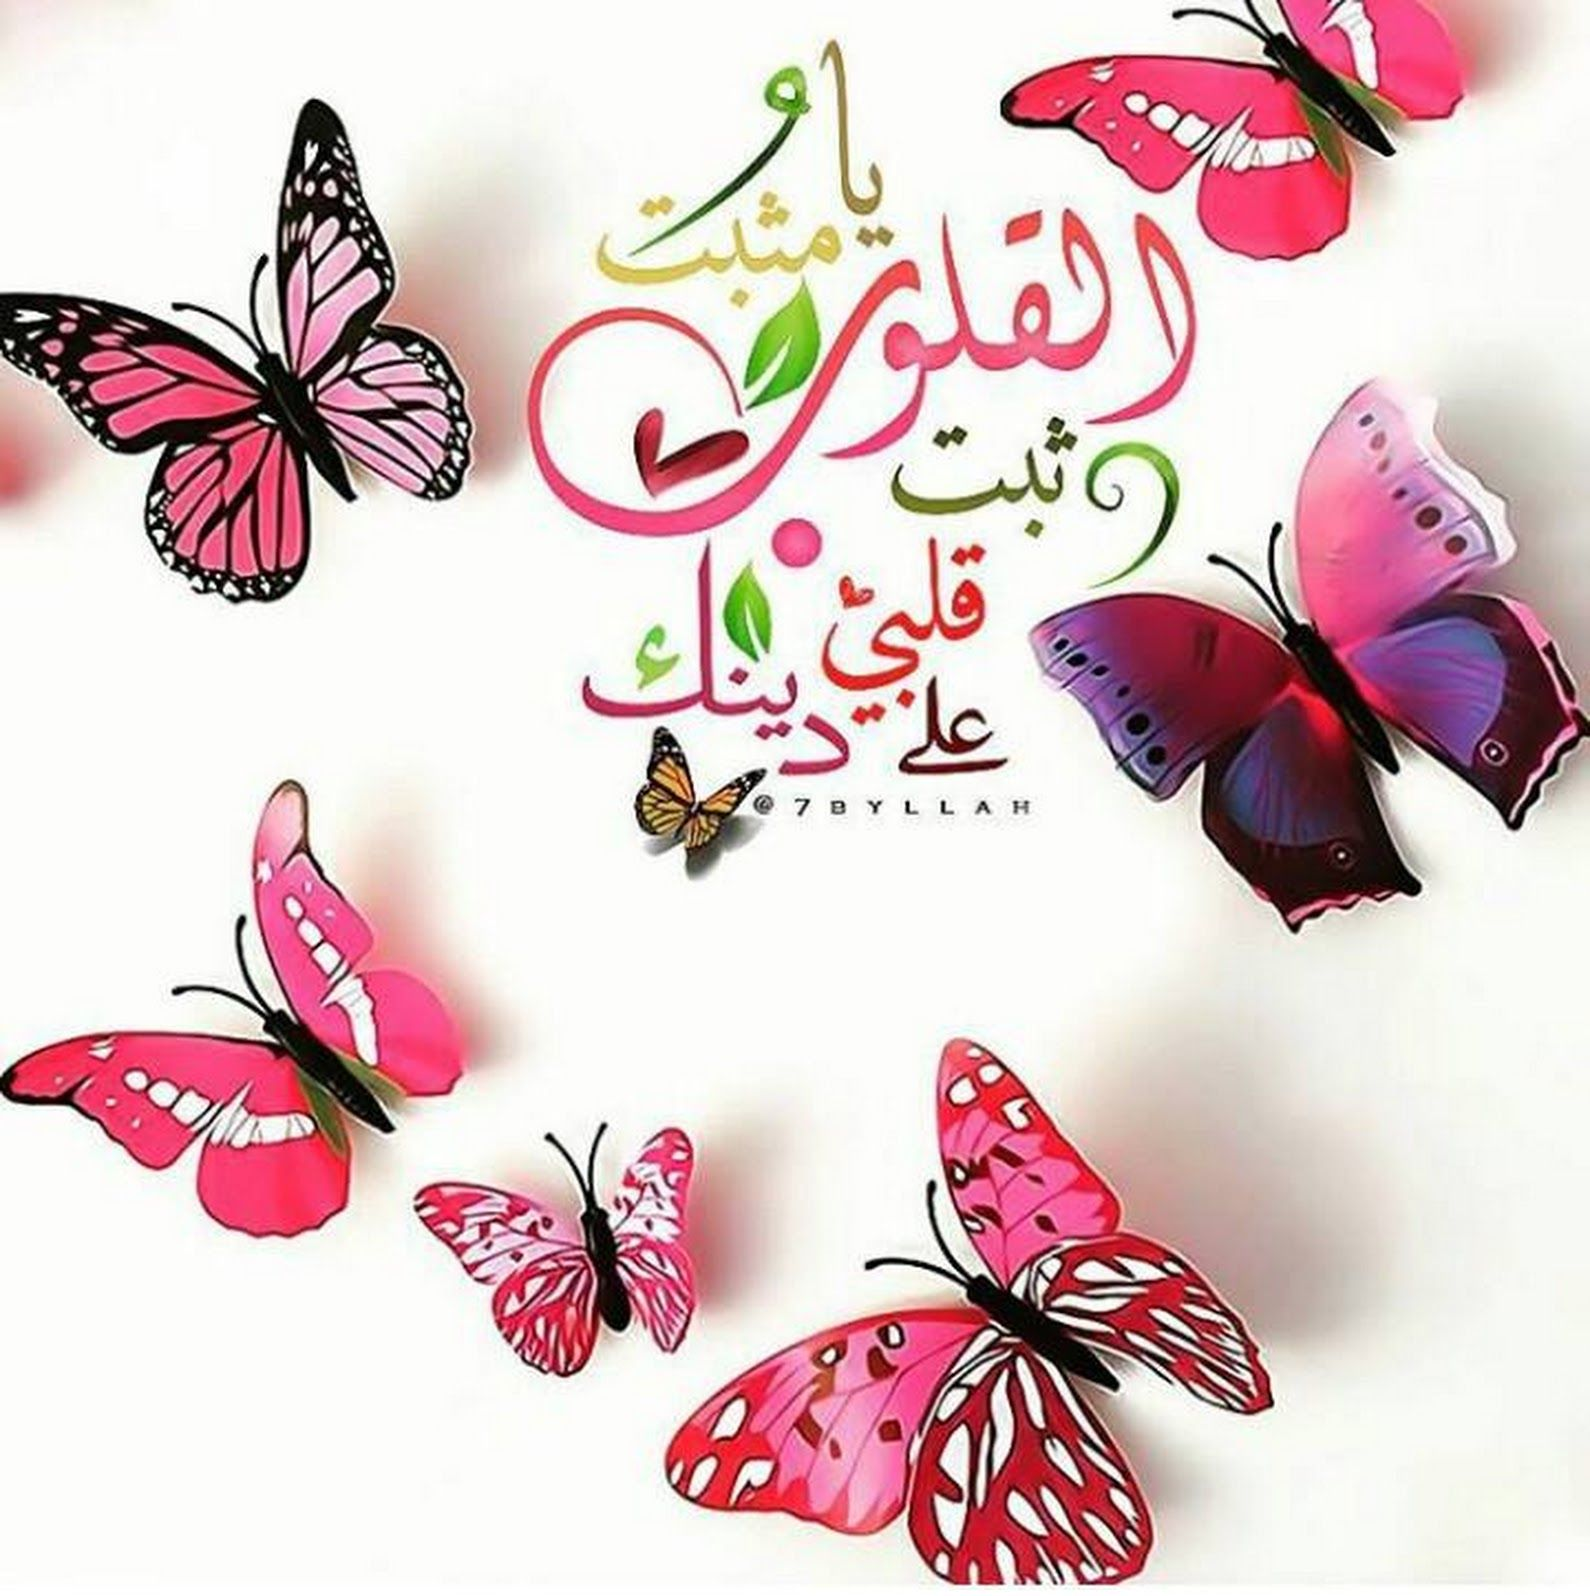 اللهم ثبت قلبي على دينك Butterfly Wallpaper Backgrounds Flower Girl Photos Butterfly Wallpaper